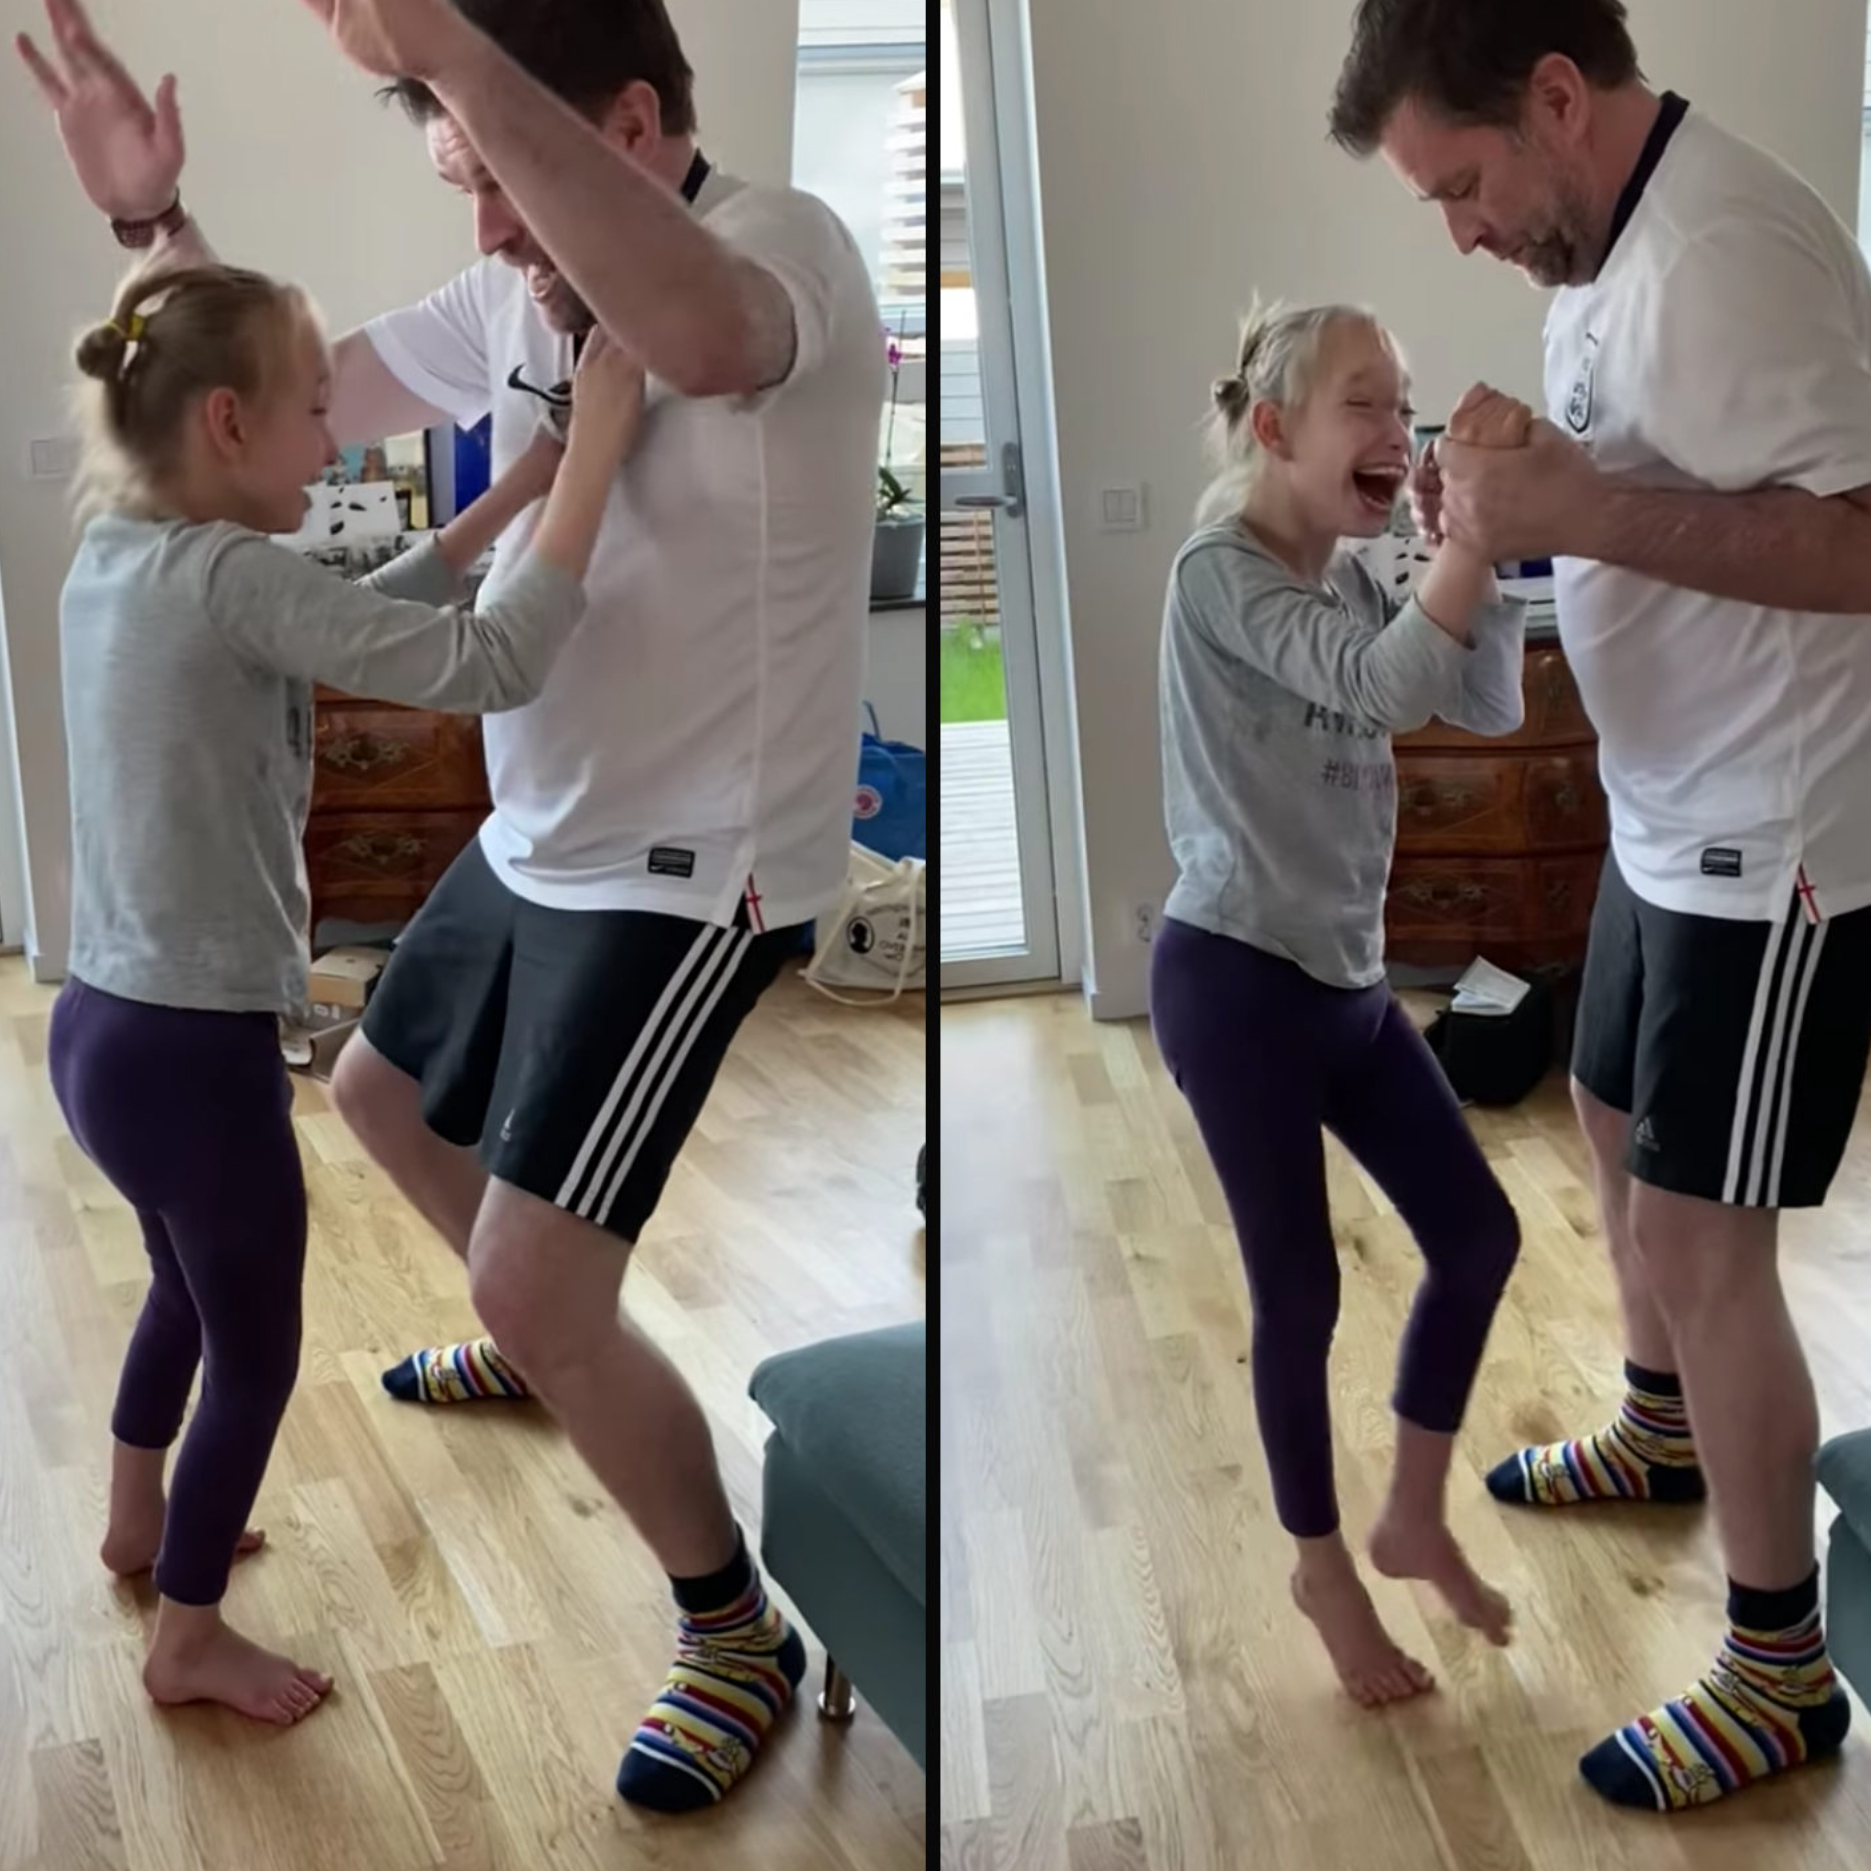 10-Yr-Old With Special Needs Stands for the First Time To Dance With Her Dad